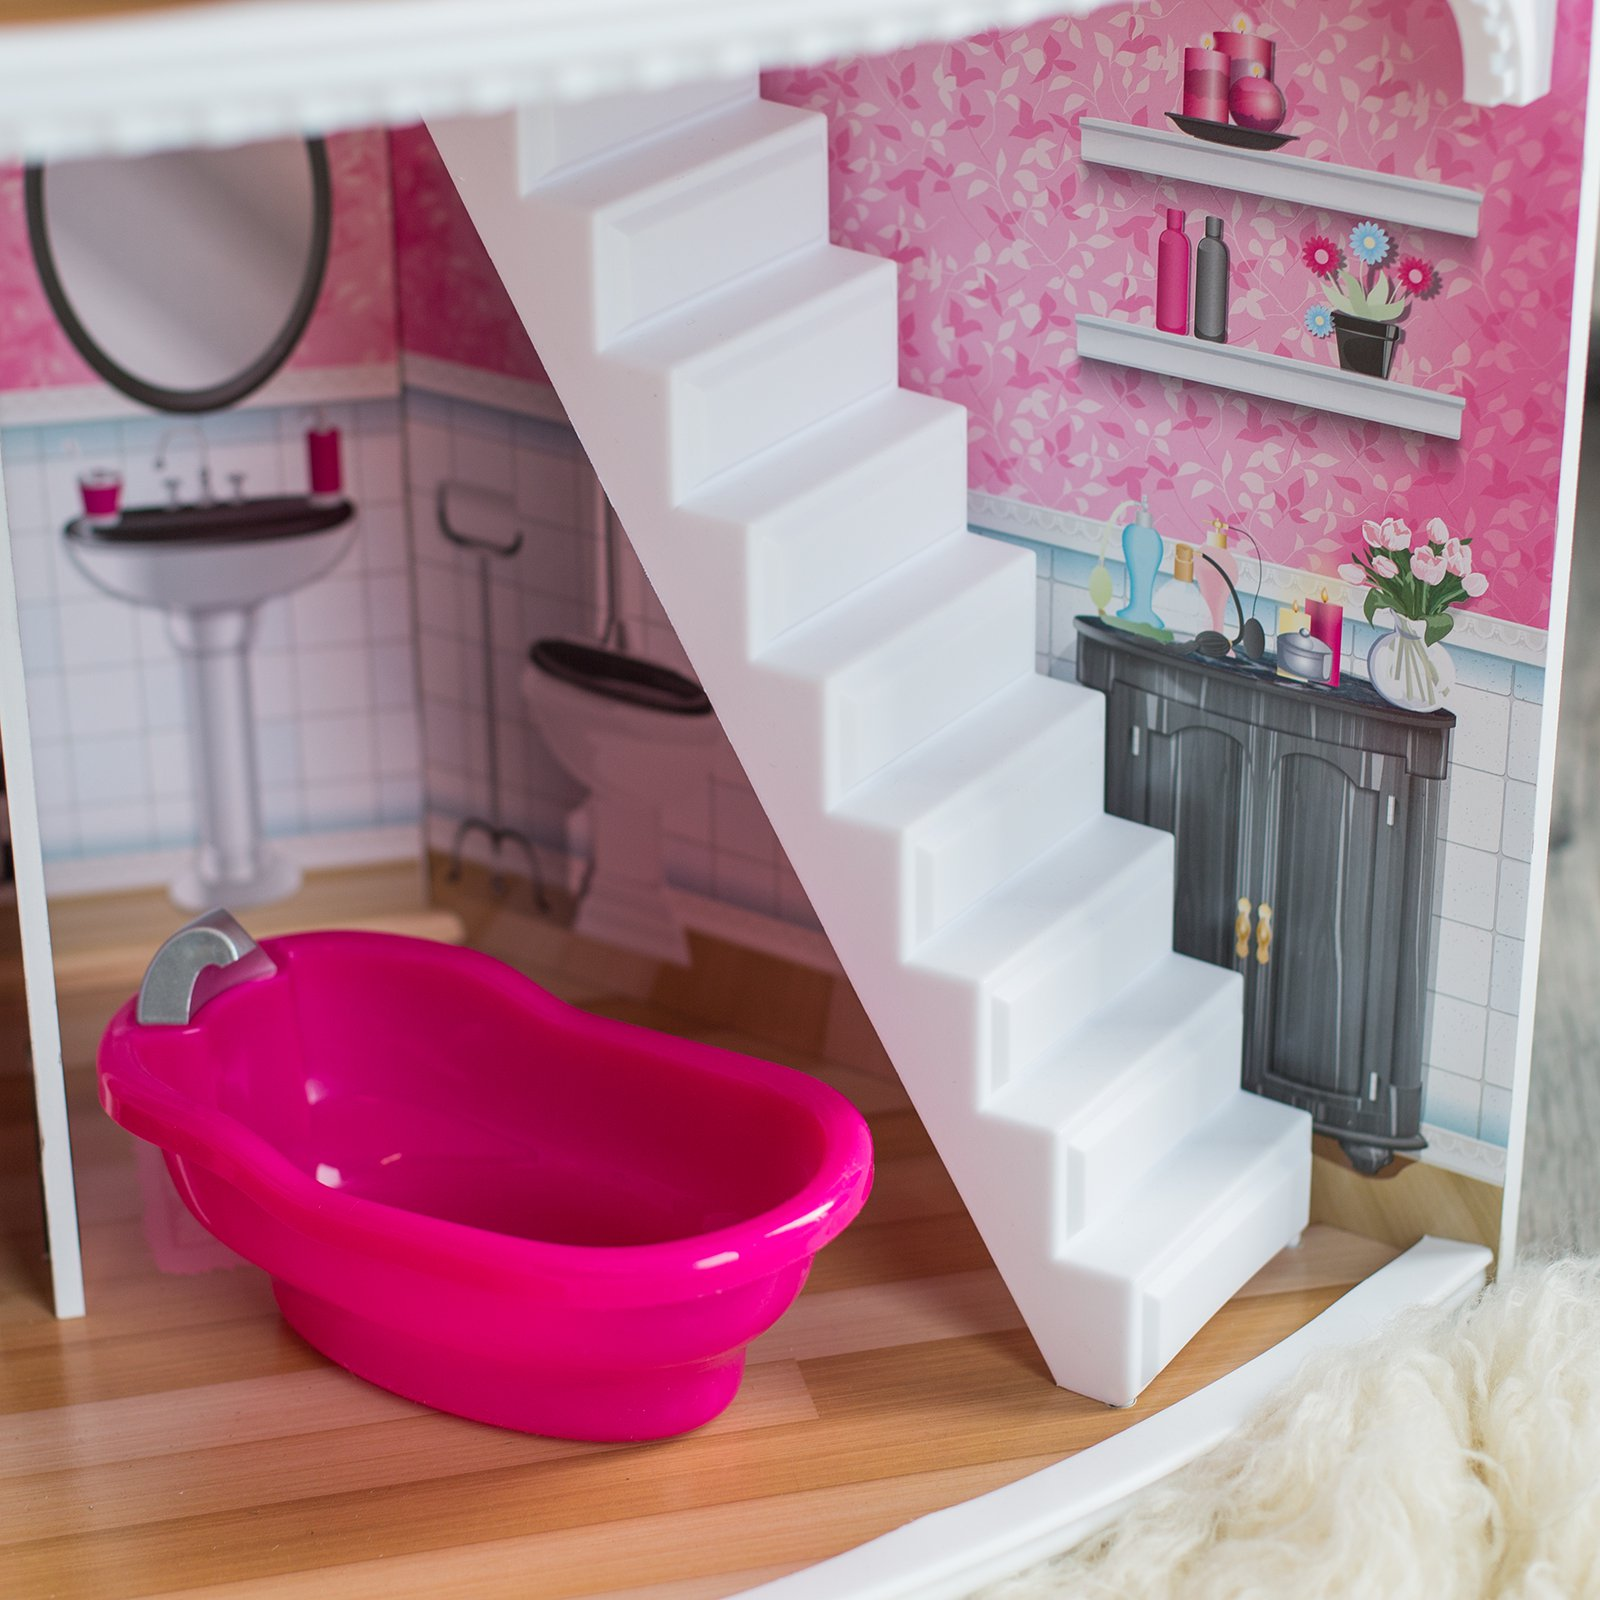 Toddler Dollhouse Pink Dollhouse Corner With Furniture Kids Girls Doll House